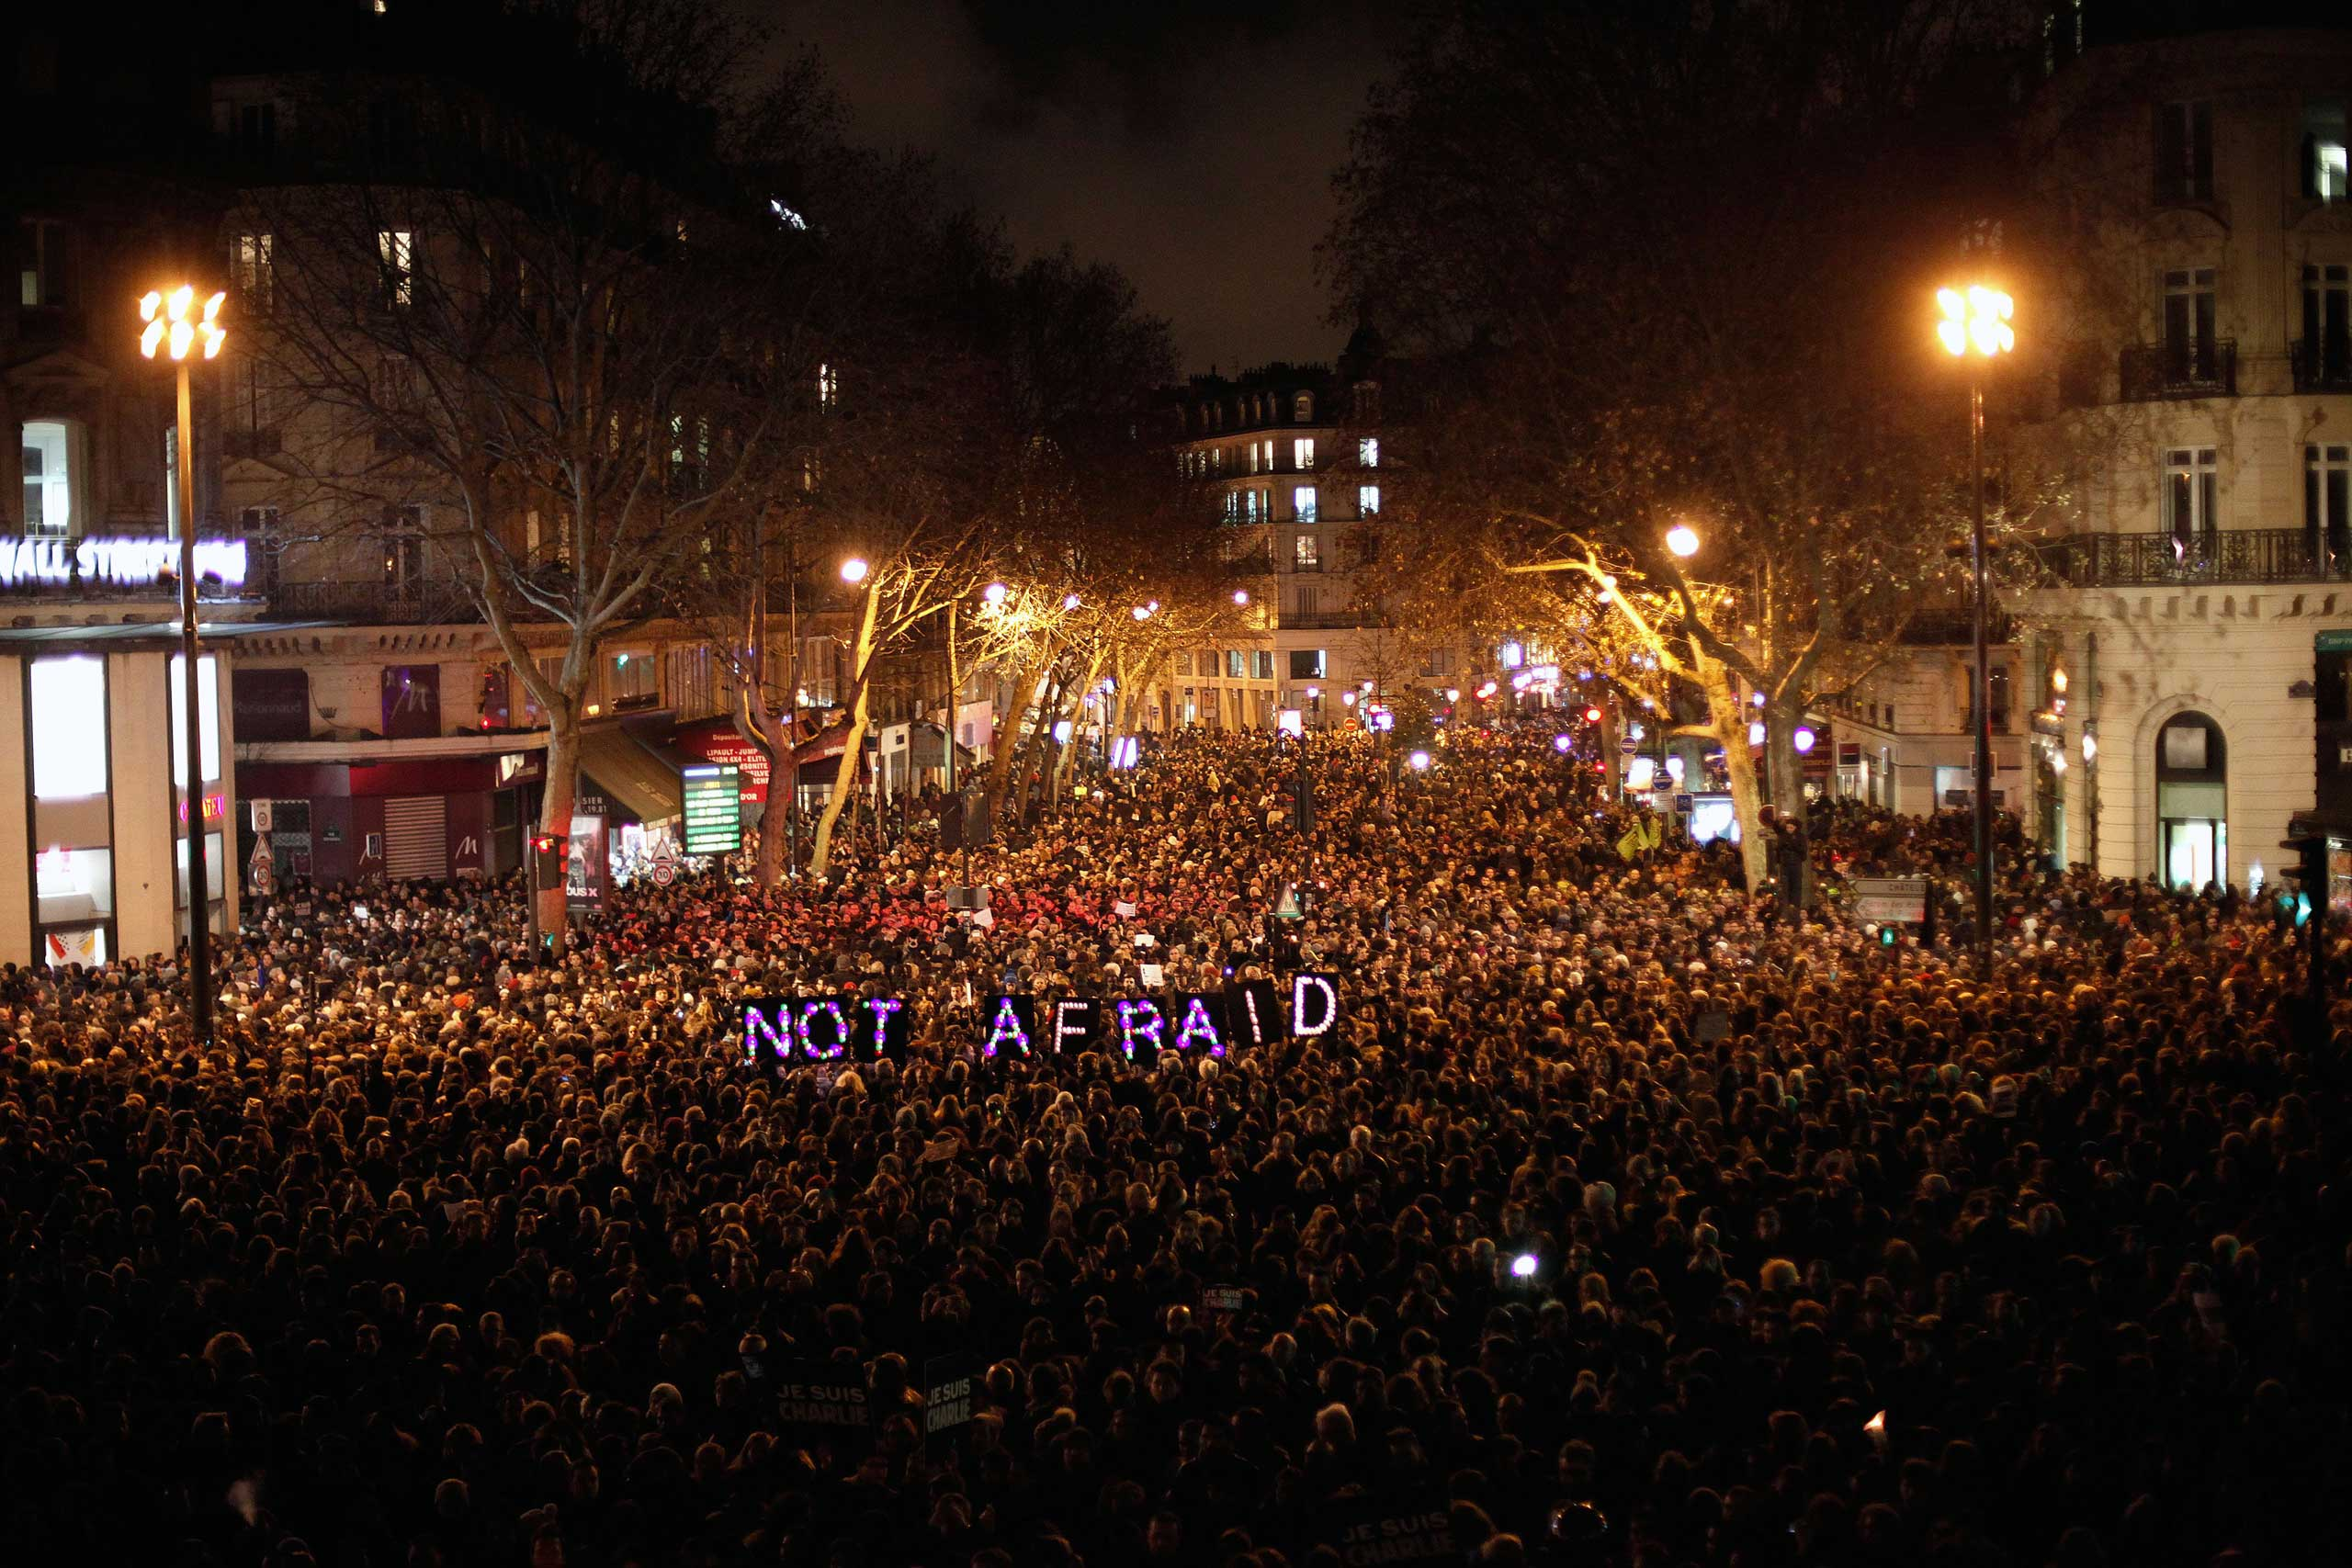 Jan. 7, 2015. People gather to pay respect for the victims of a terror attack against a satirical newspaper in Paris, Jan. 7, 2015.